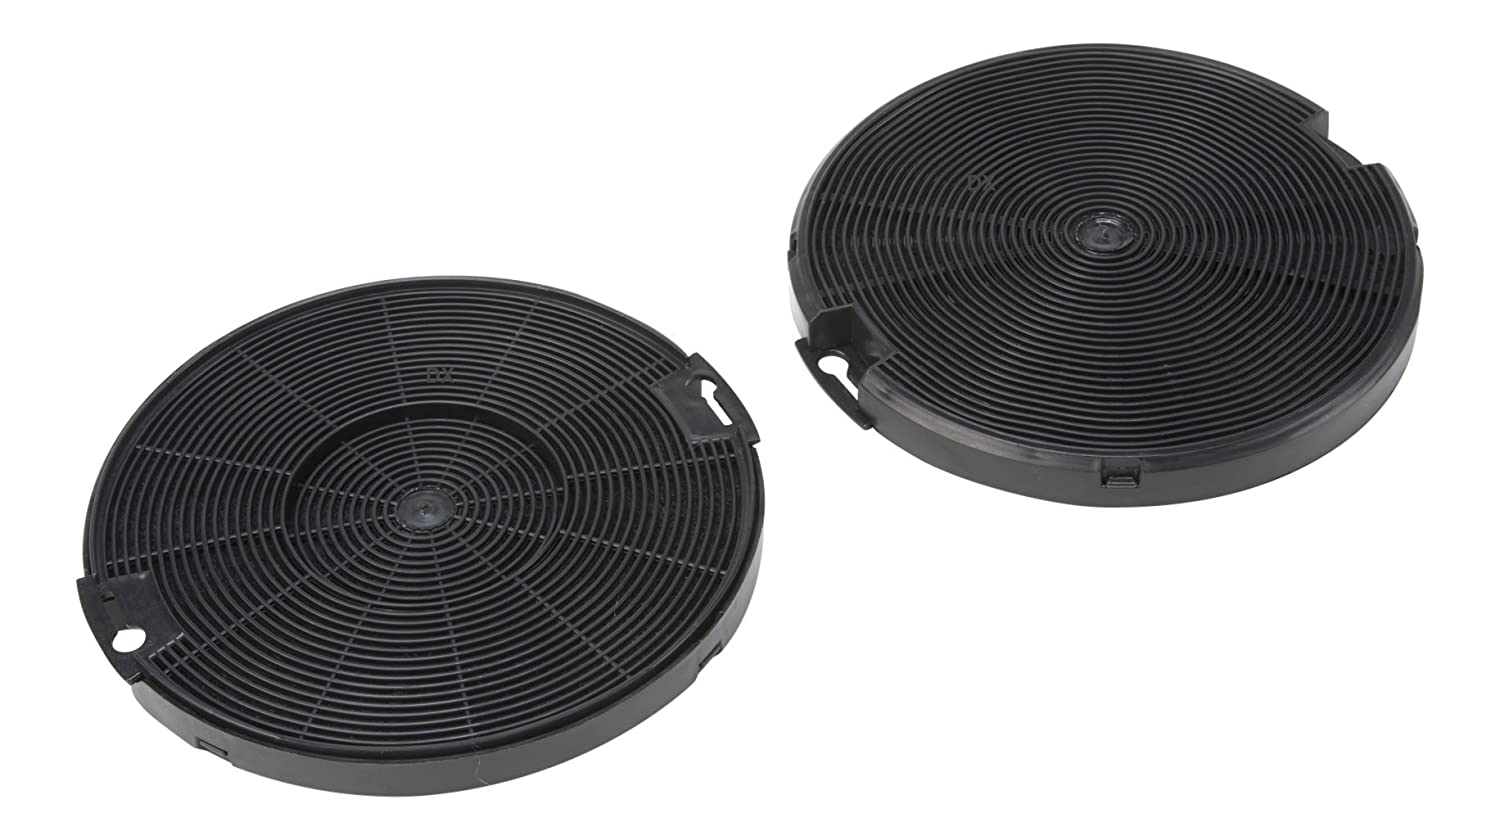 Drehflex® Carbon Filter/Activated Carbon Filter/Filter/Odour Filter–Suitable For Various Lunch for AEG-Electrolux/Faber/IKEA/SMEG COOKER HOODS/Covers–Suitable for Part Number 4055093712/405509371/112.0067.944112.0254.245etc